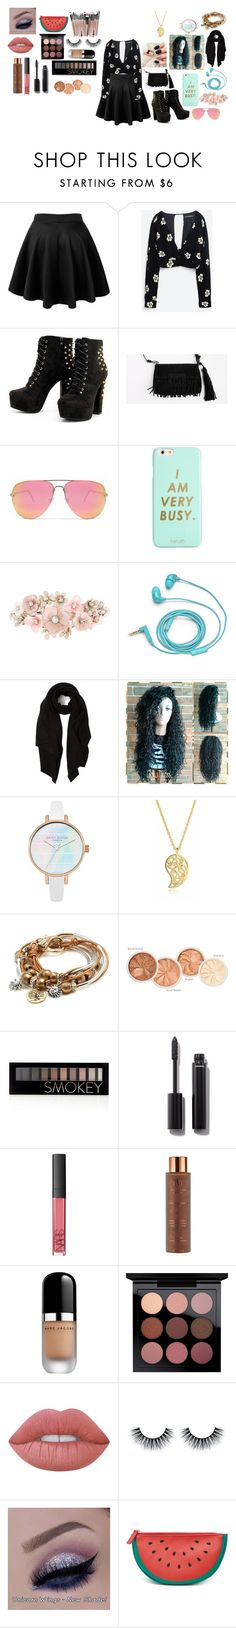 """""""blac"""" by mickeykaii ❤ liked on Polyvore featuring Zara, Quay, ban.do, Accessorize, FOSSIL, Cash Ca, Sonal Bhaskaran, Lizzy James, Forever 21 and Chanel"""